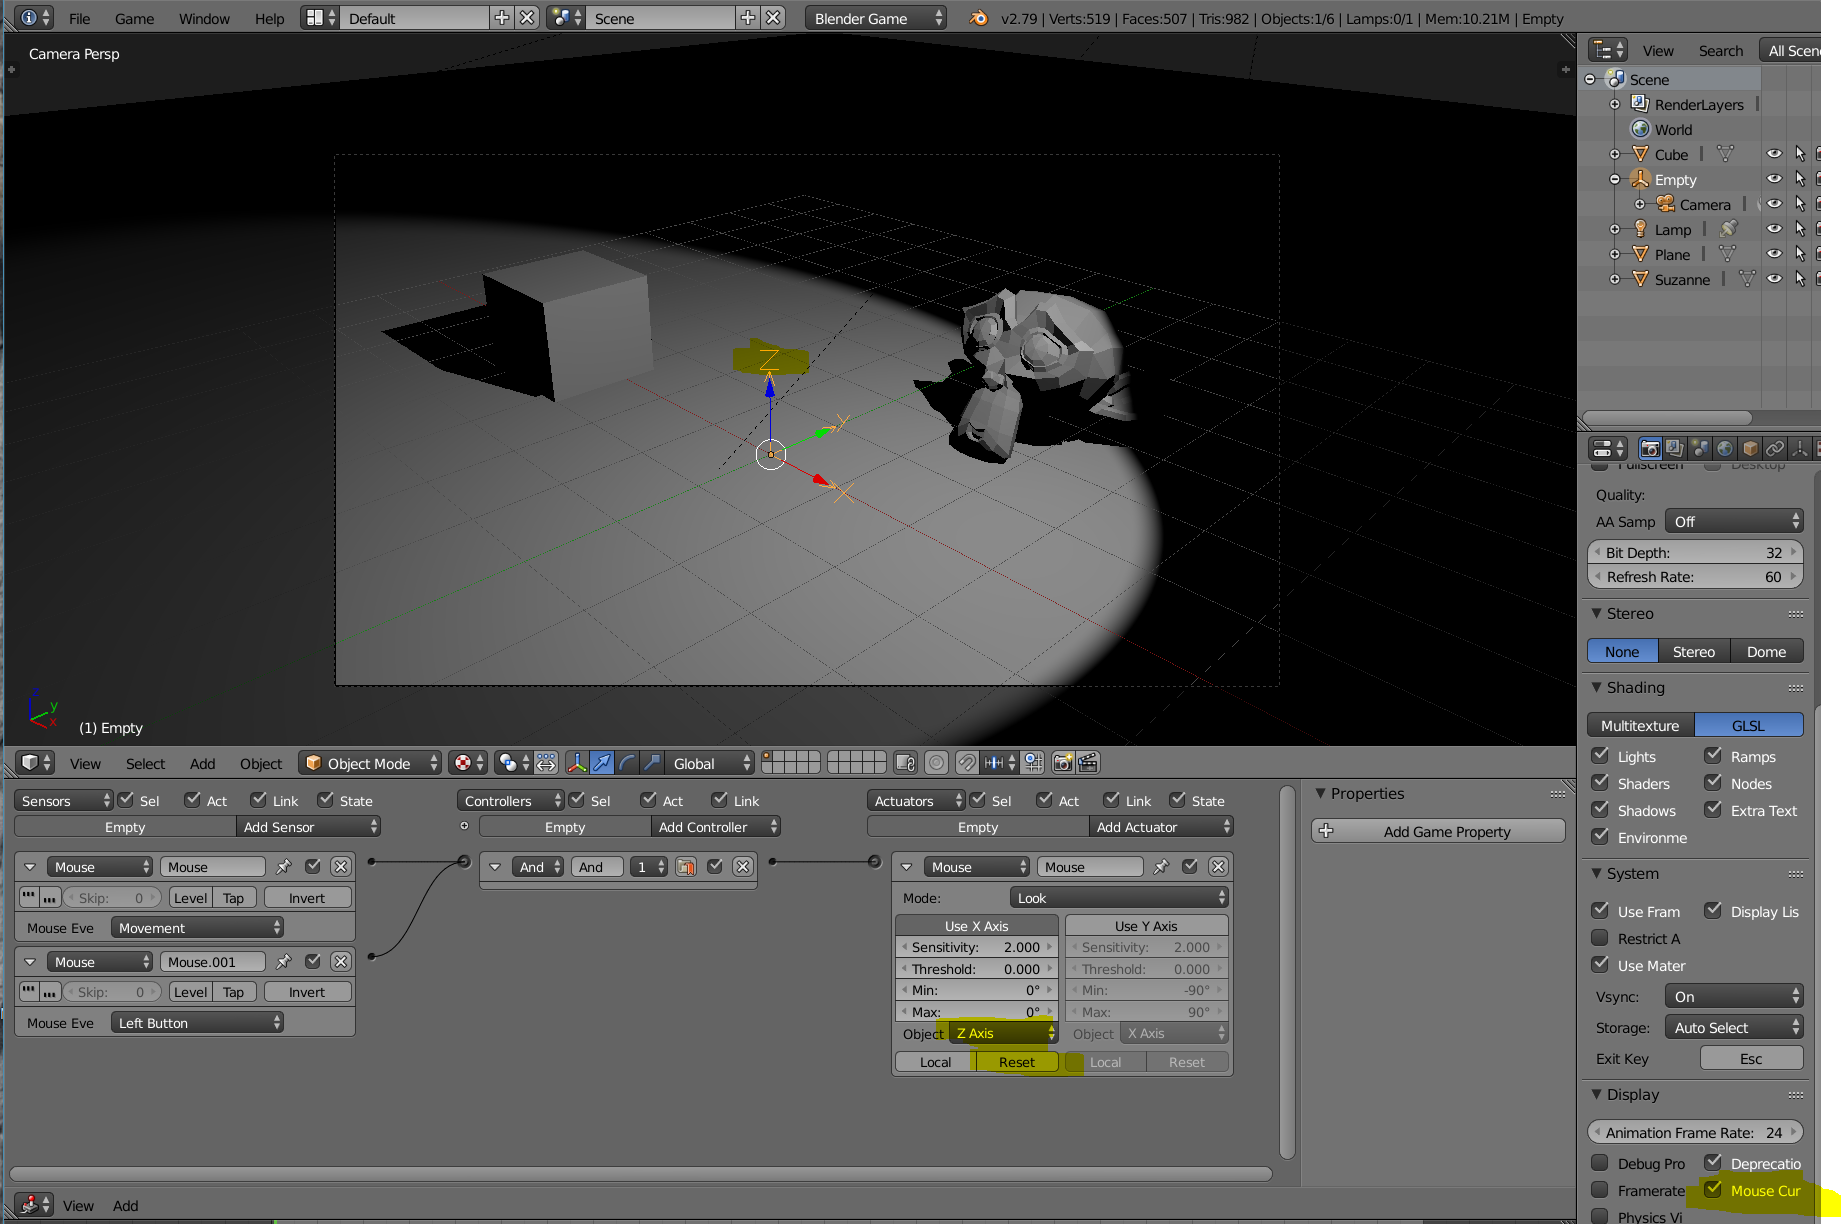 Showroom camera - mouse centering problem - Game Engine Support and